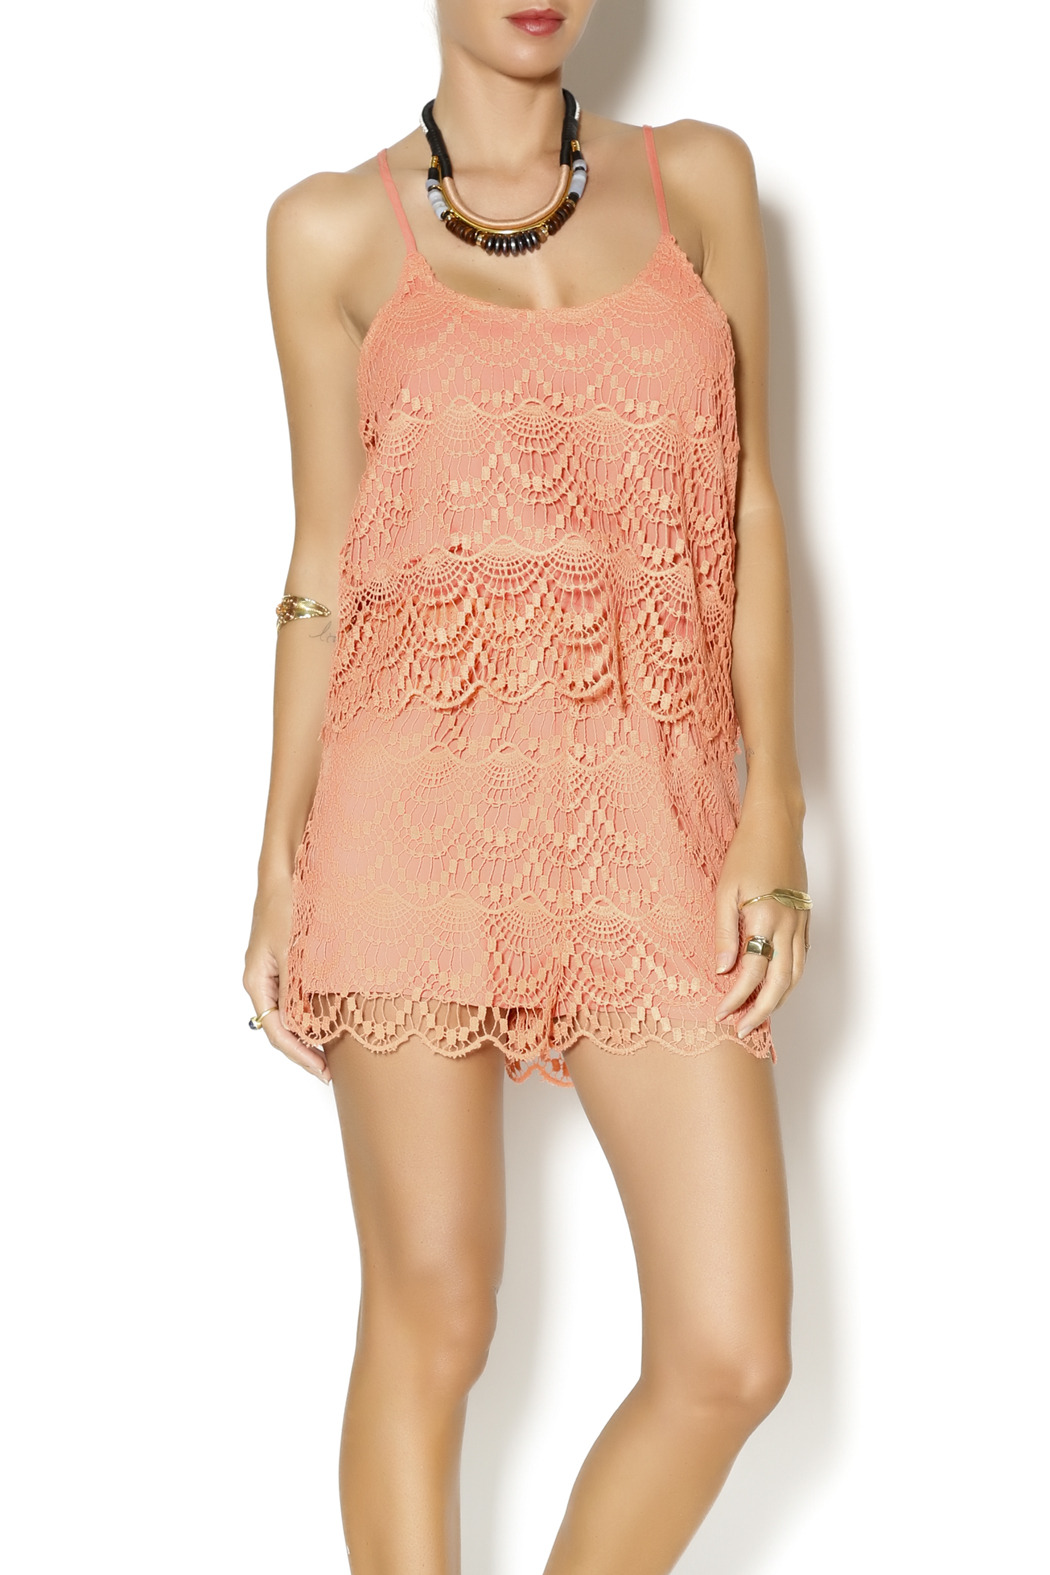 ca6c5dcfd9c4 Lulumari Tangerine Crochet Romper from New York by Dor L Dor ...